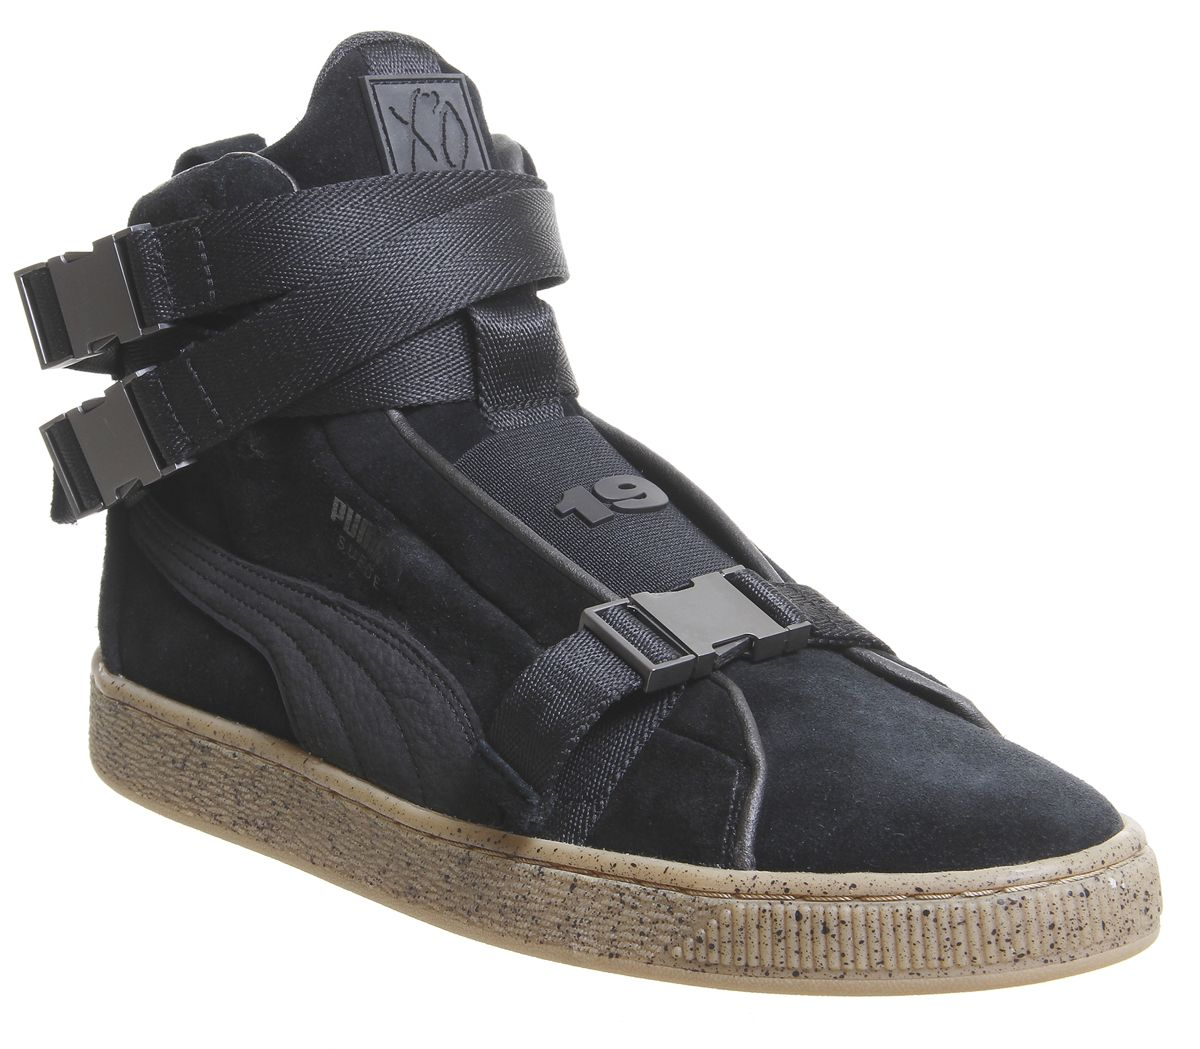 hot sale online c624d 895ff Puma Suede Classic Trainers The Weeknd Black Black - His trainers